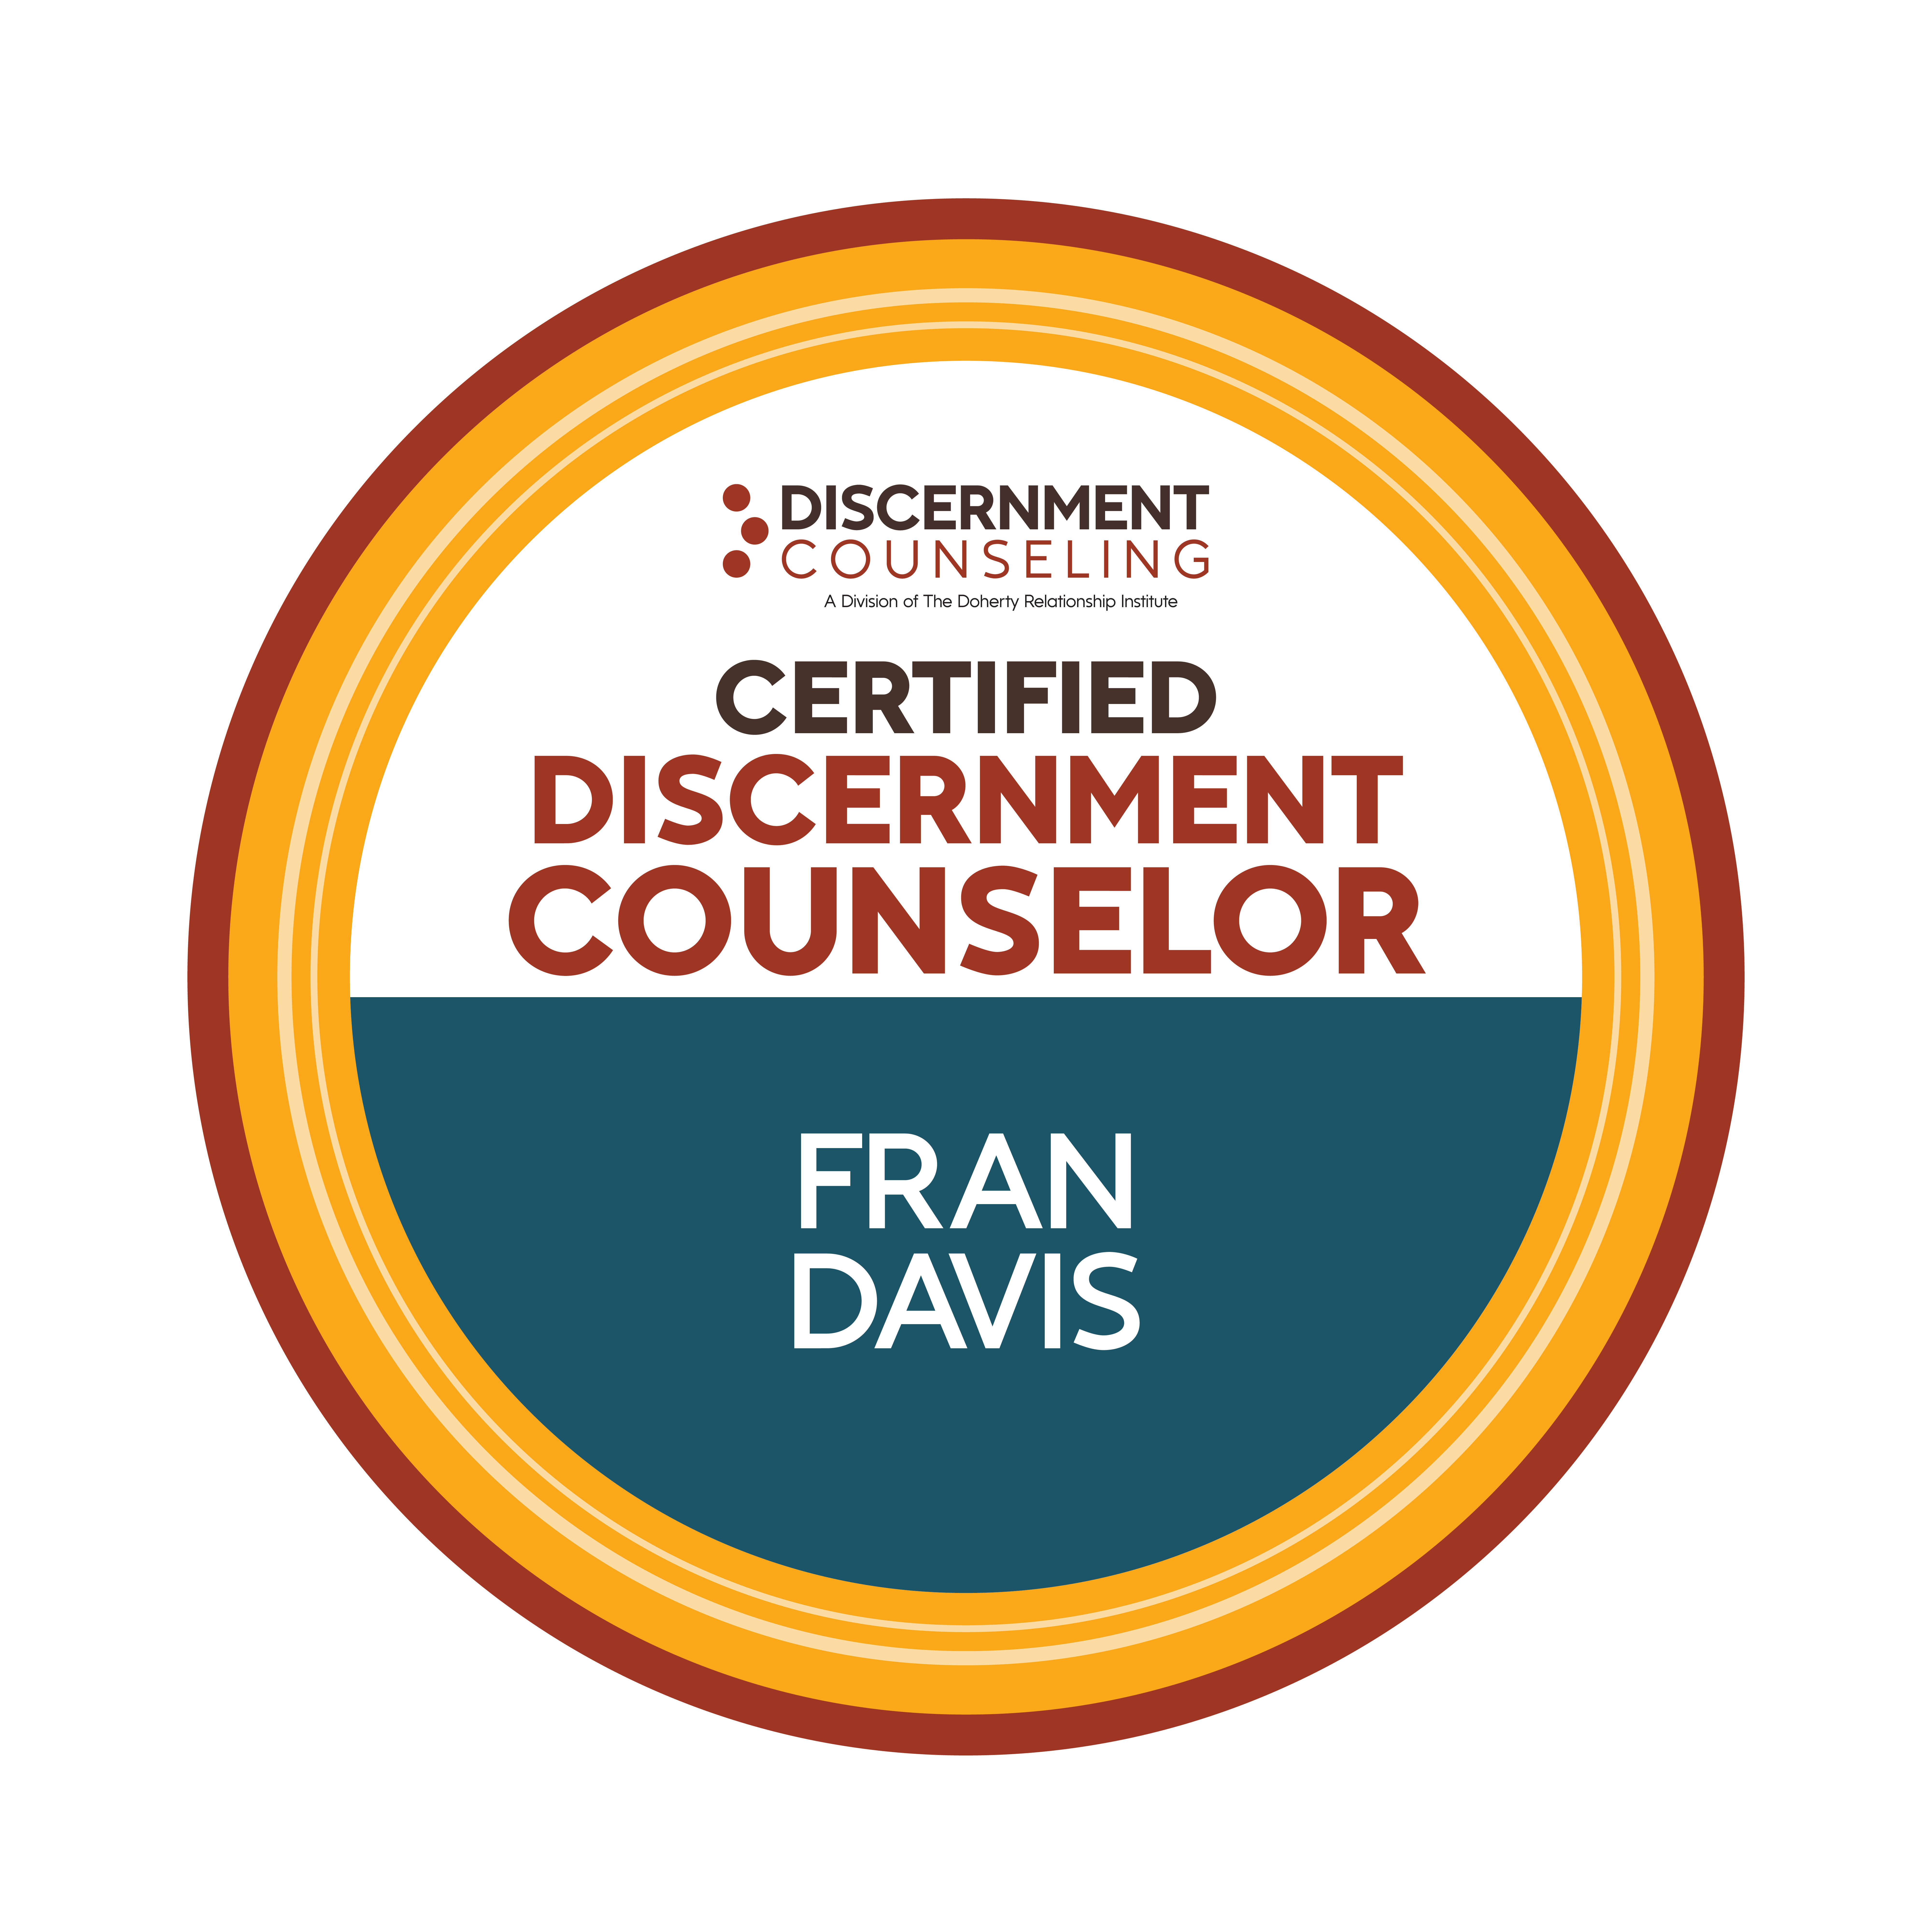 certified Discernment Counselor badge